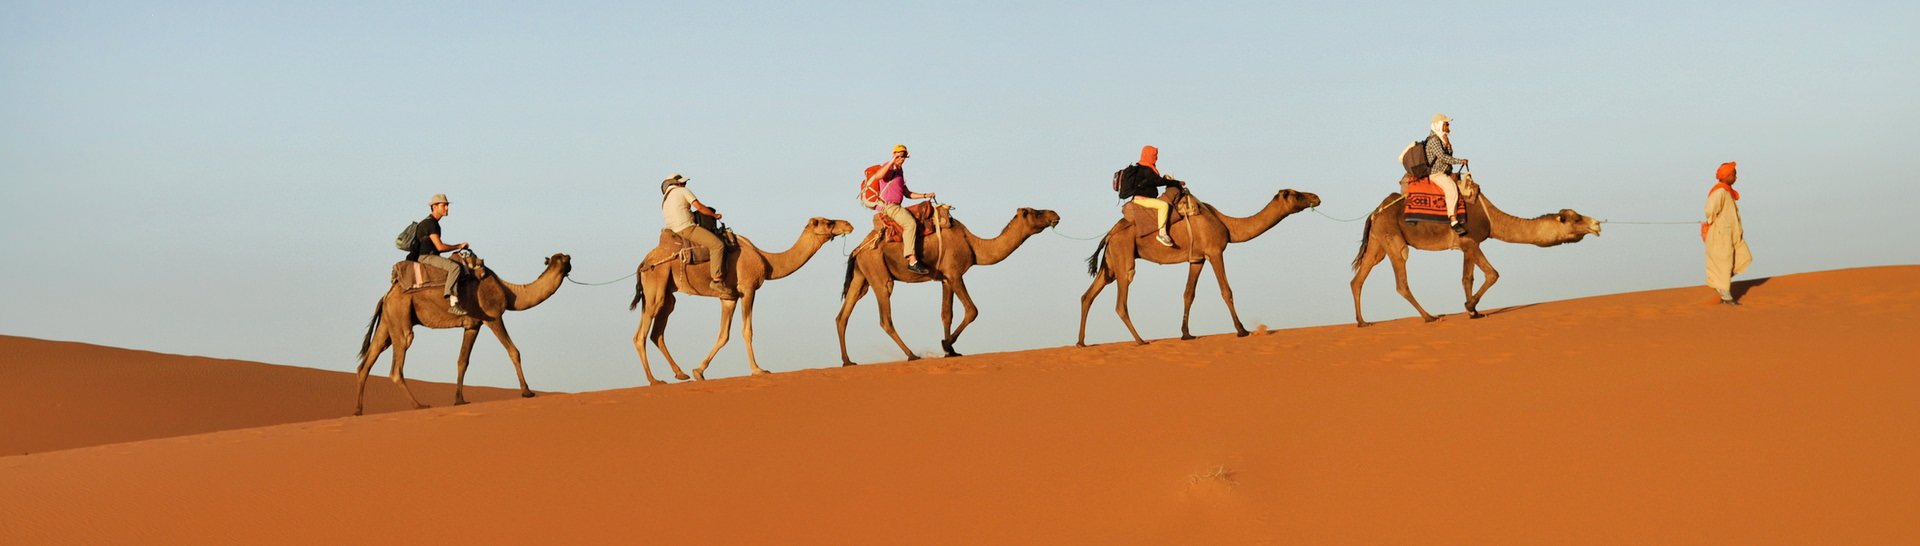 Camel trek in the Sahara Desert